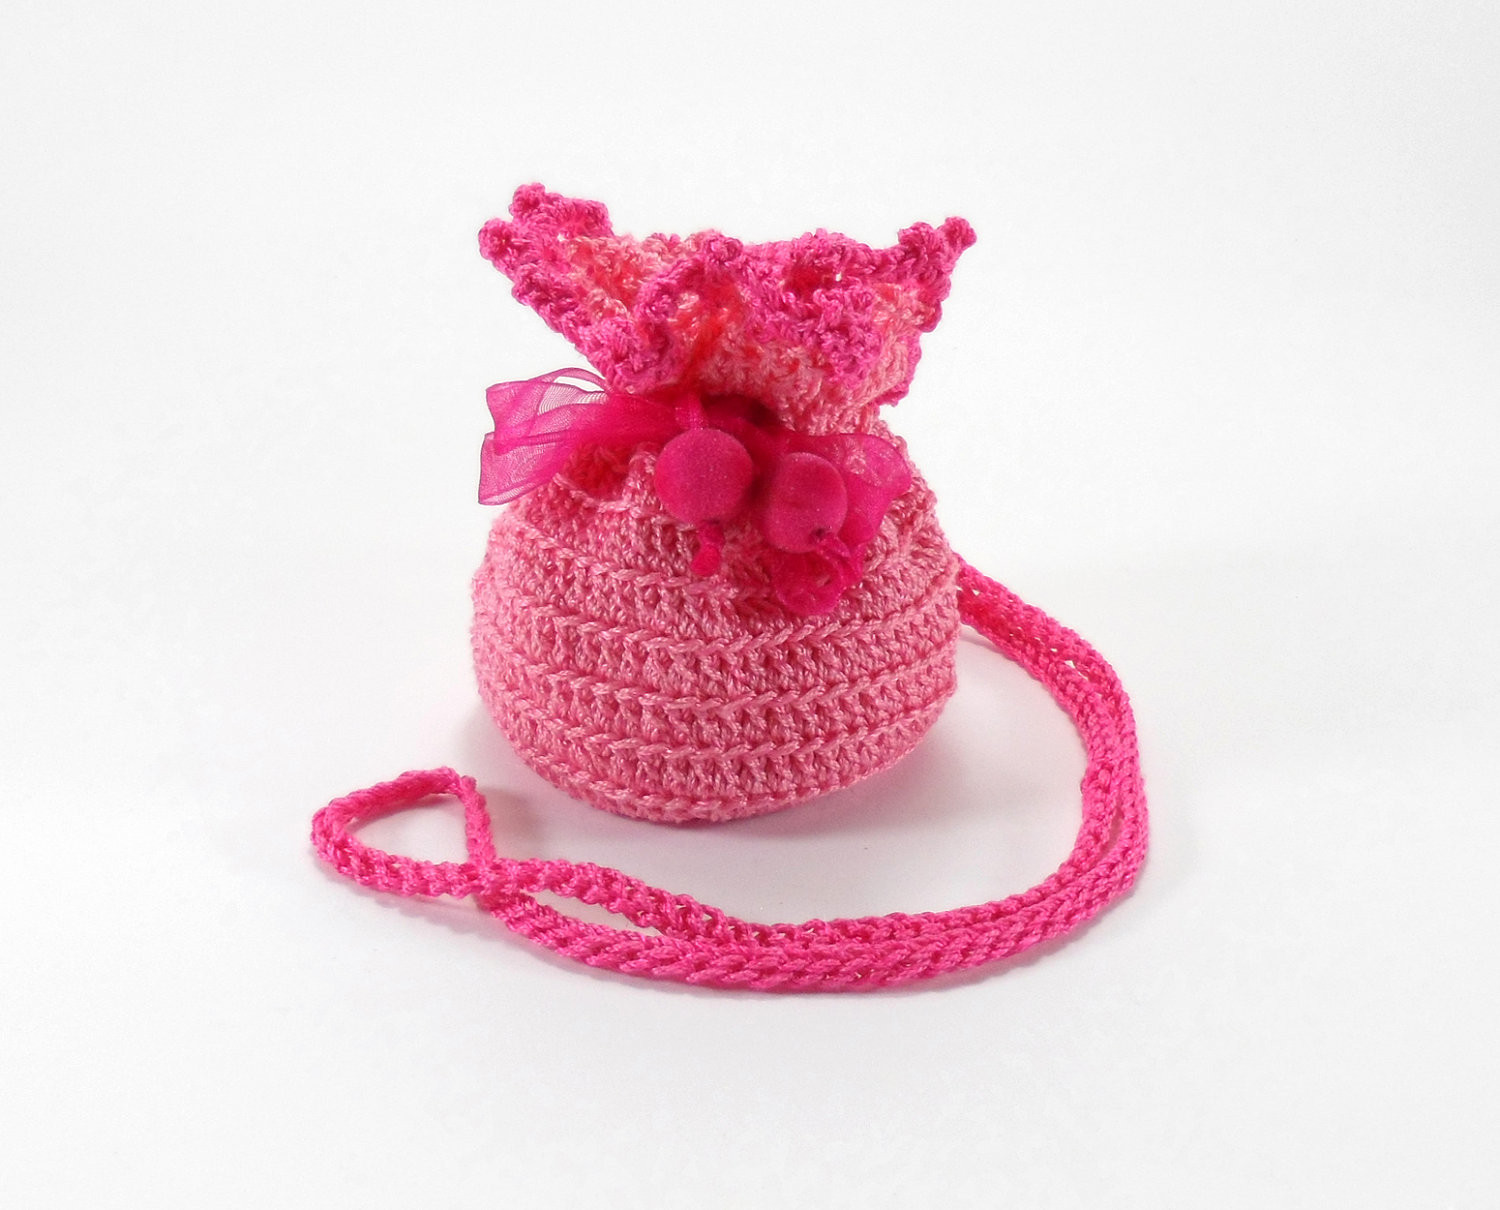 Crochet Drawstring Bag Lovely Crochet Small Pouch Jewelry Bag with Drawstring Pink Of Superb 46 Images Crochet Drawstring Bag